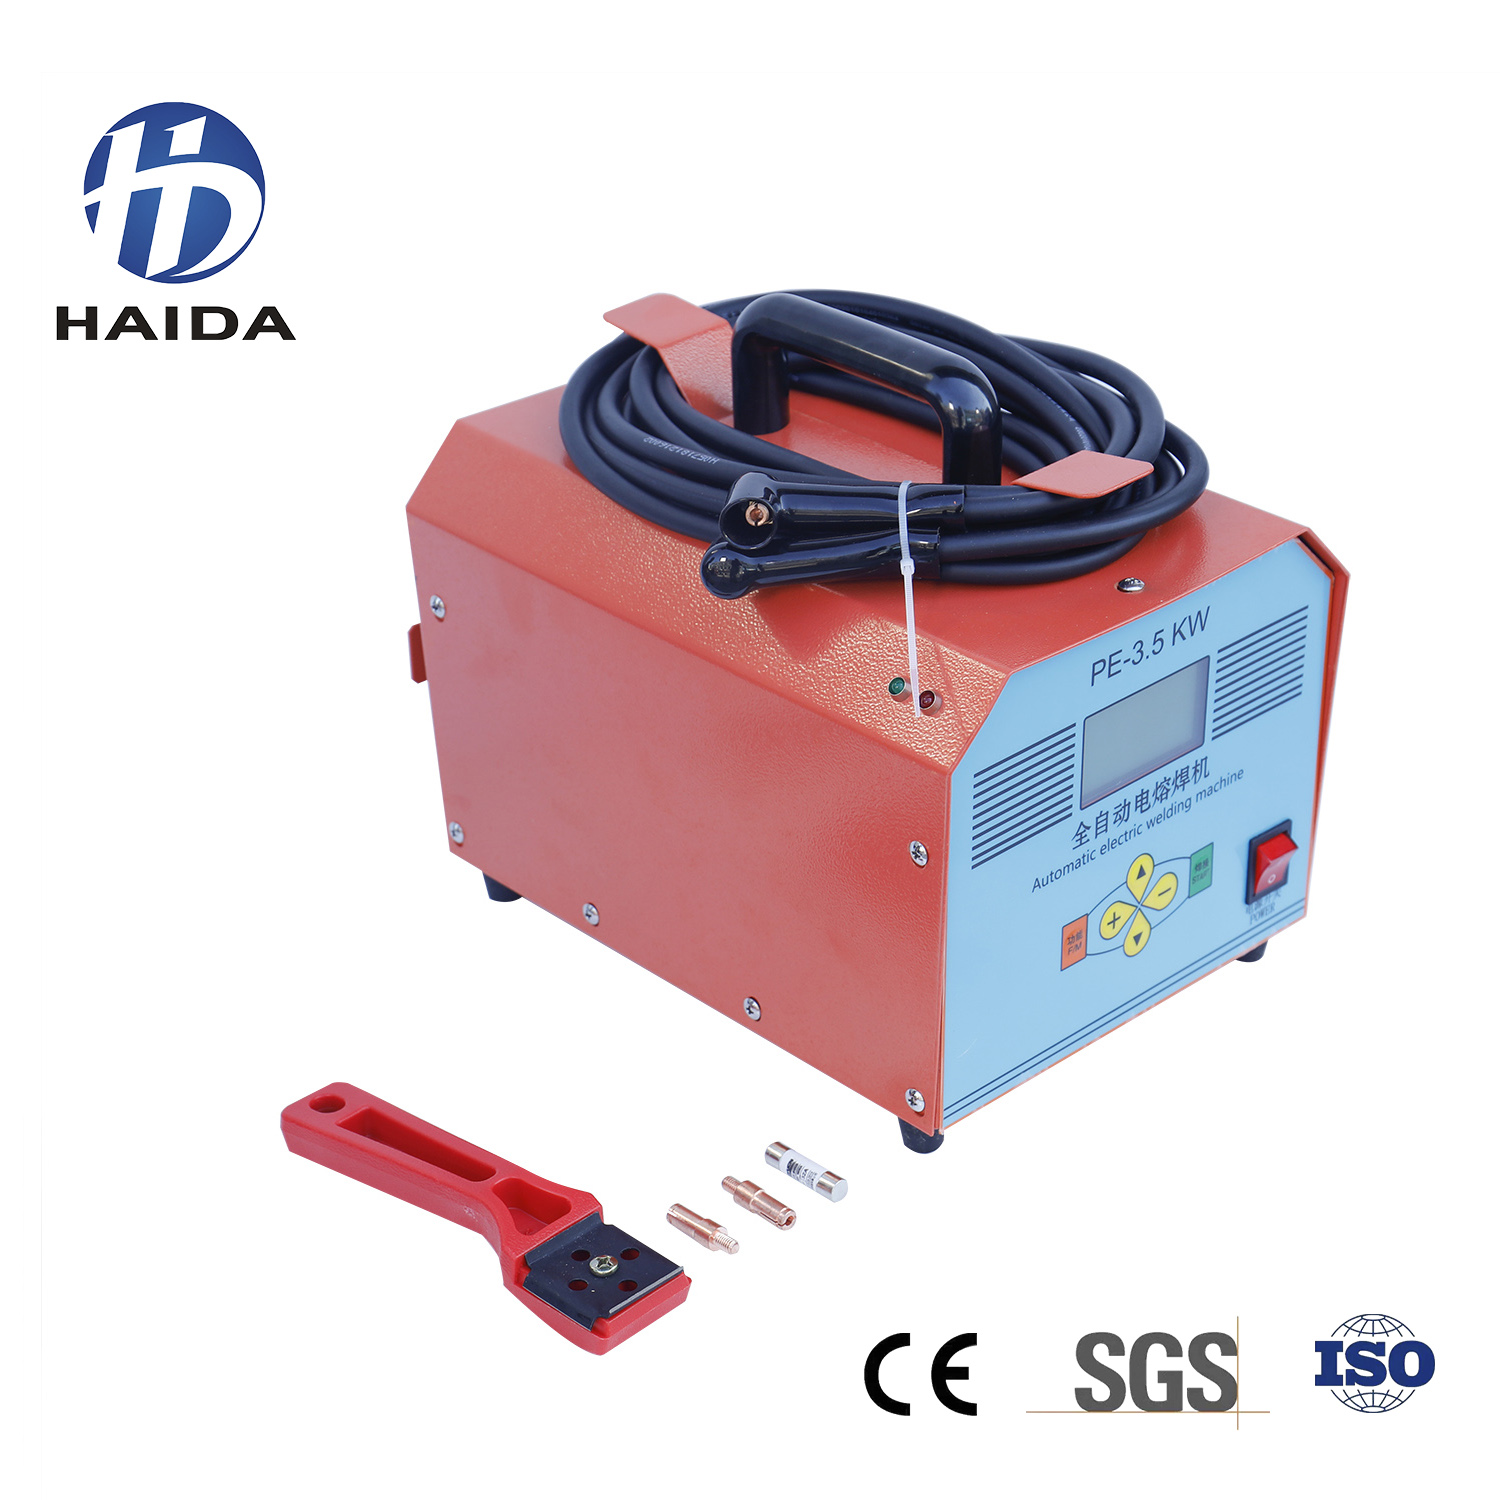 HD-DRHJ315 ELECTRICFUSION WELDING MACHINE